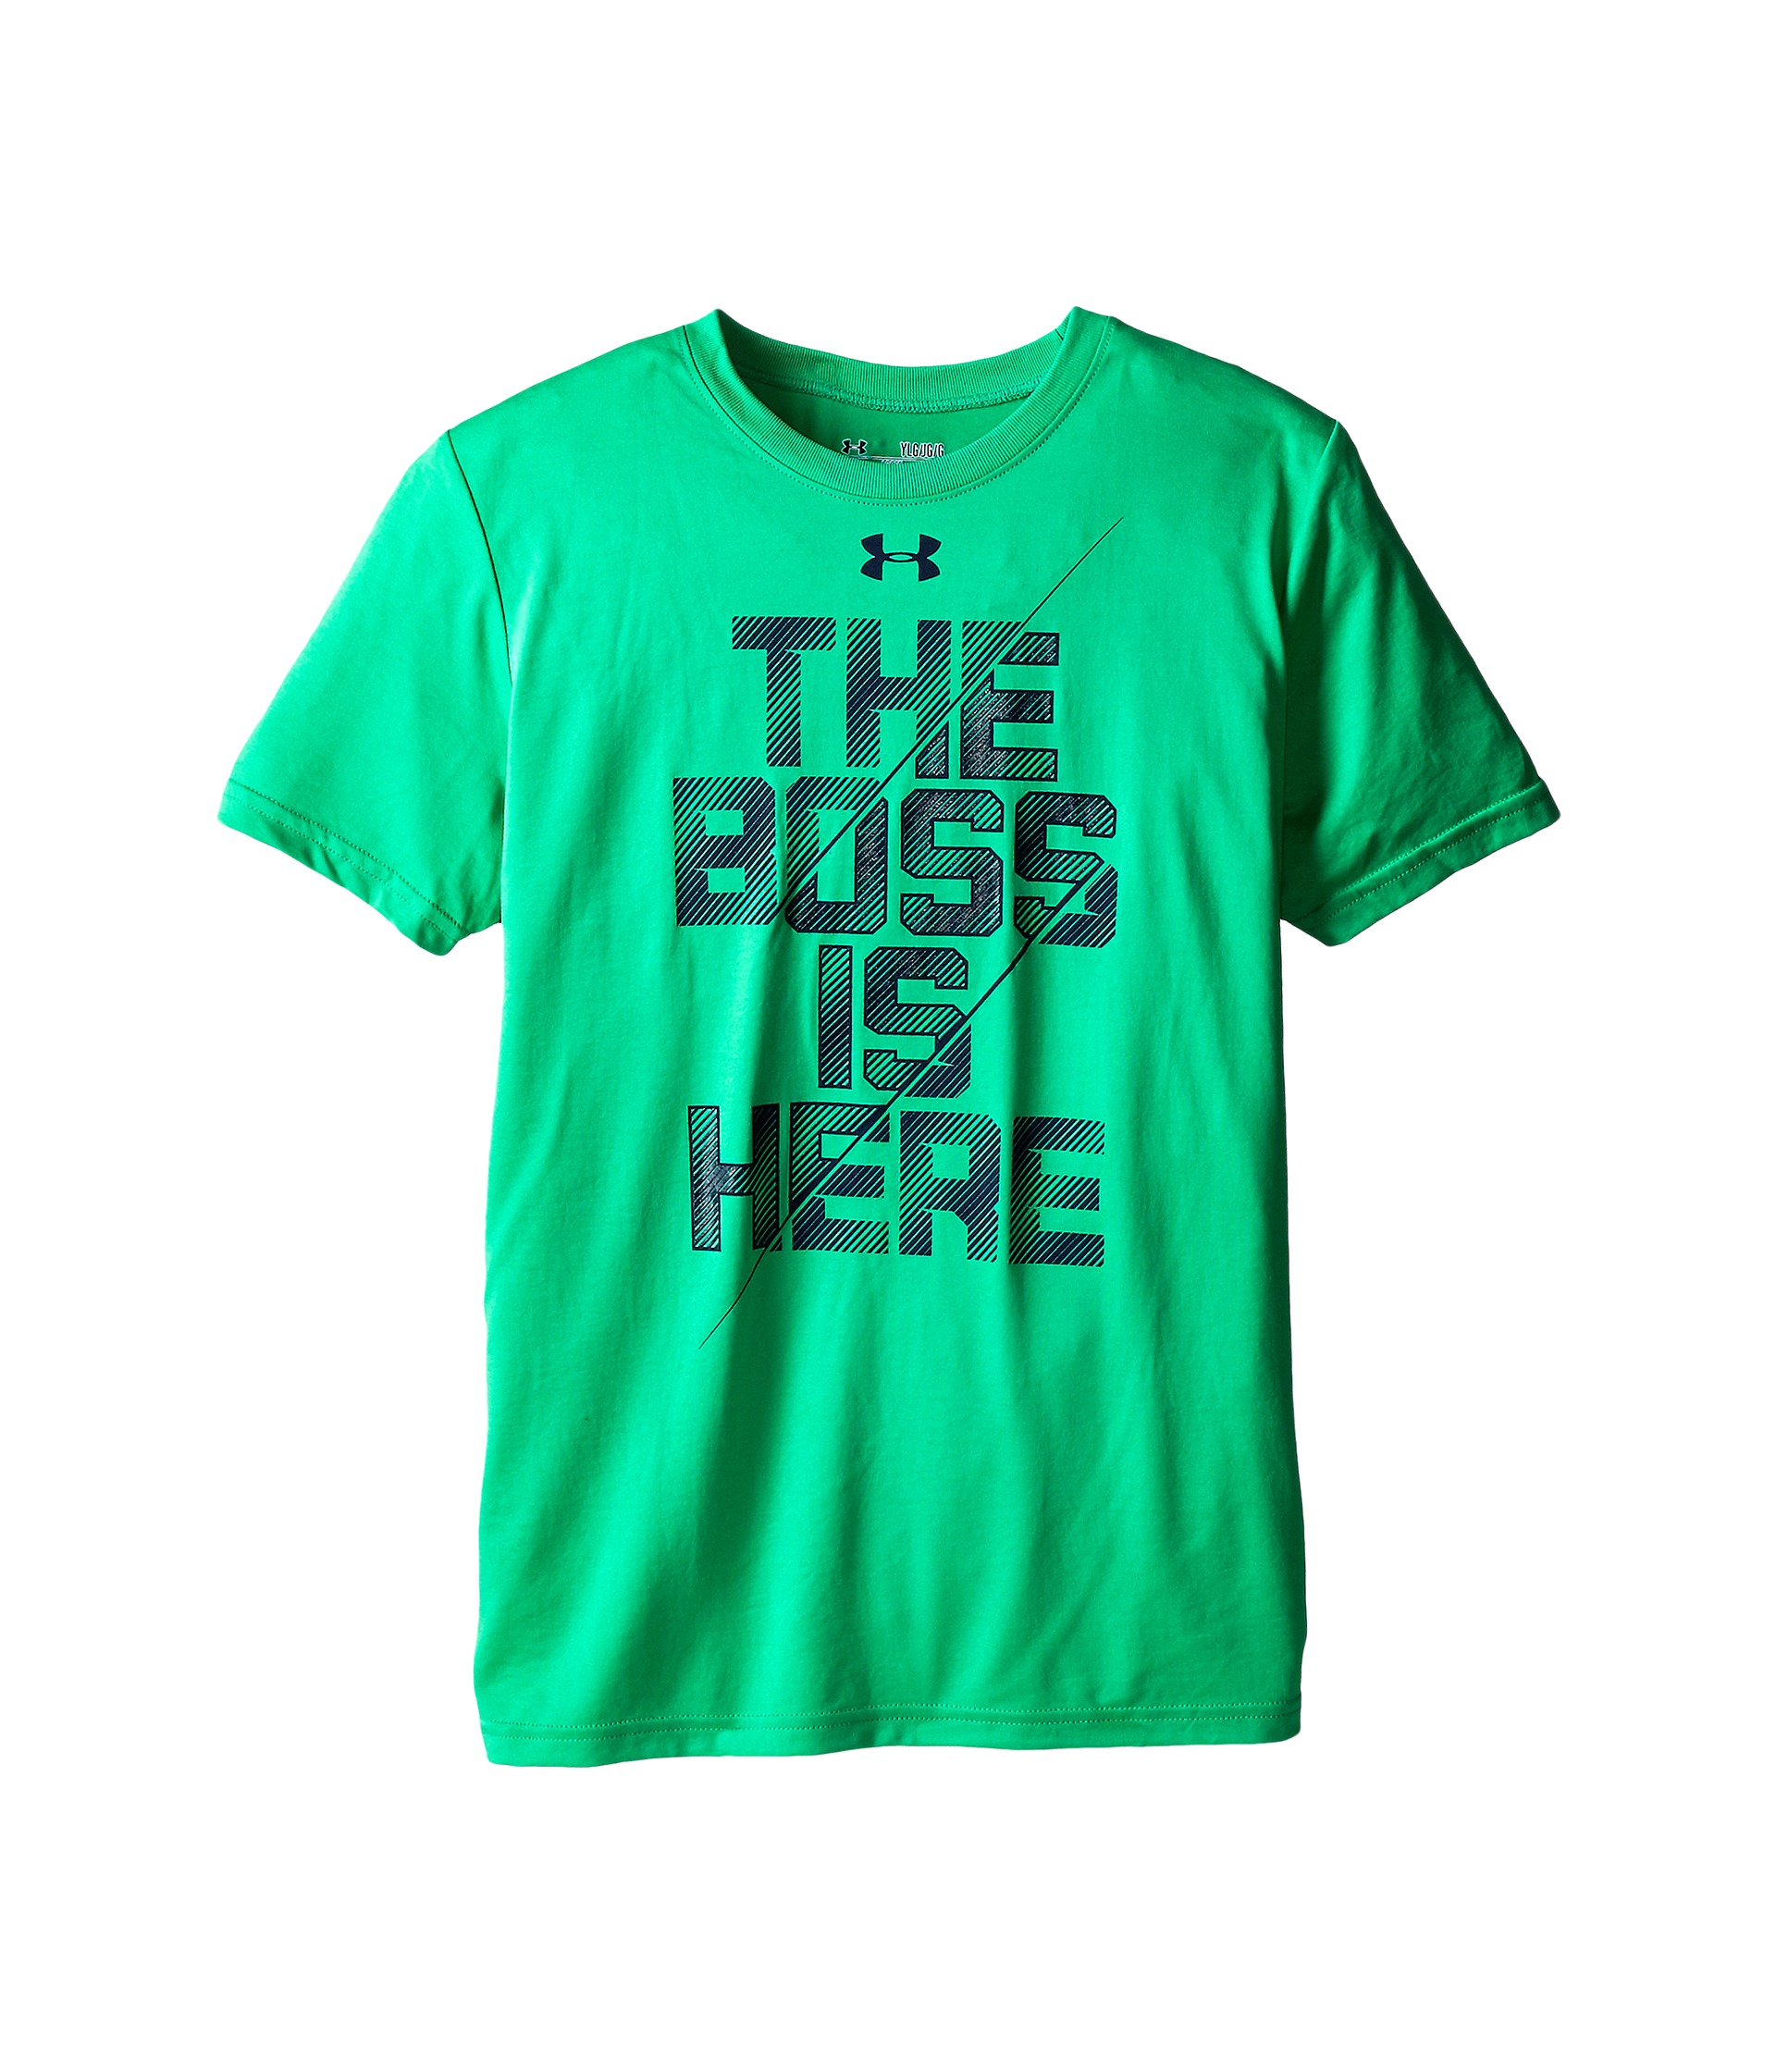 Under armour kids ua boss is here short sleeve t shirt big for Under armour shirts for kids